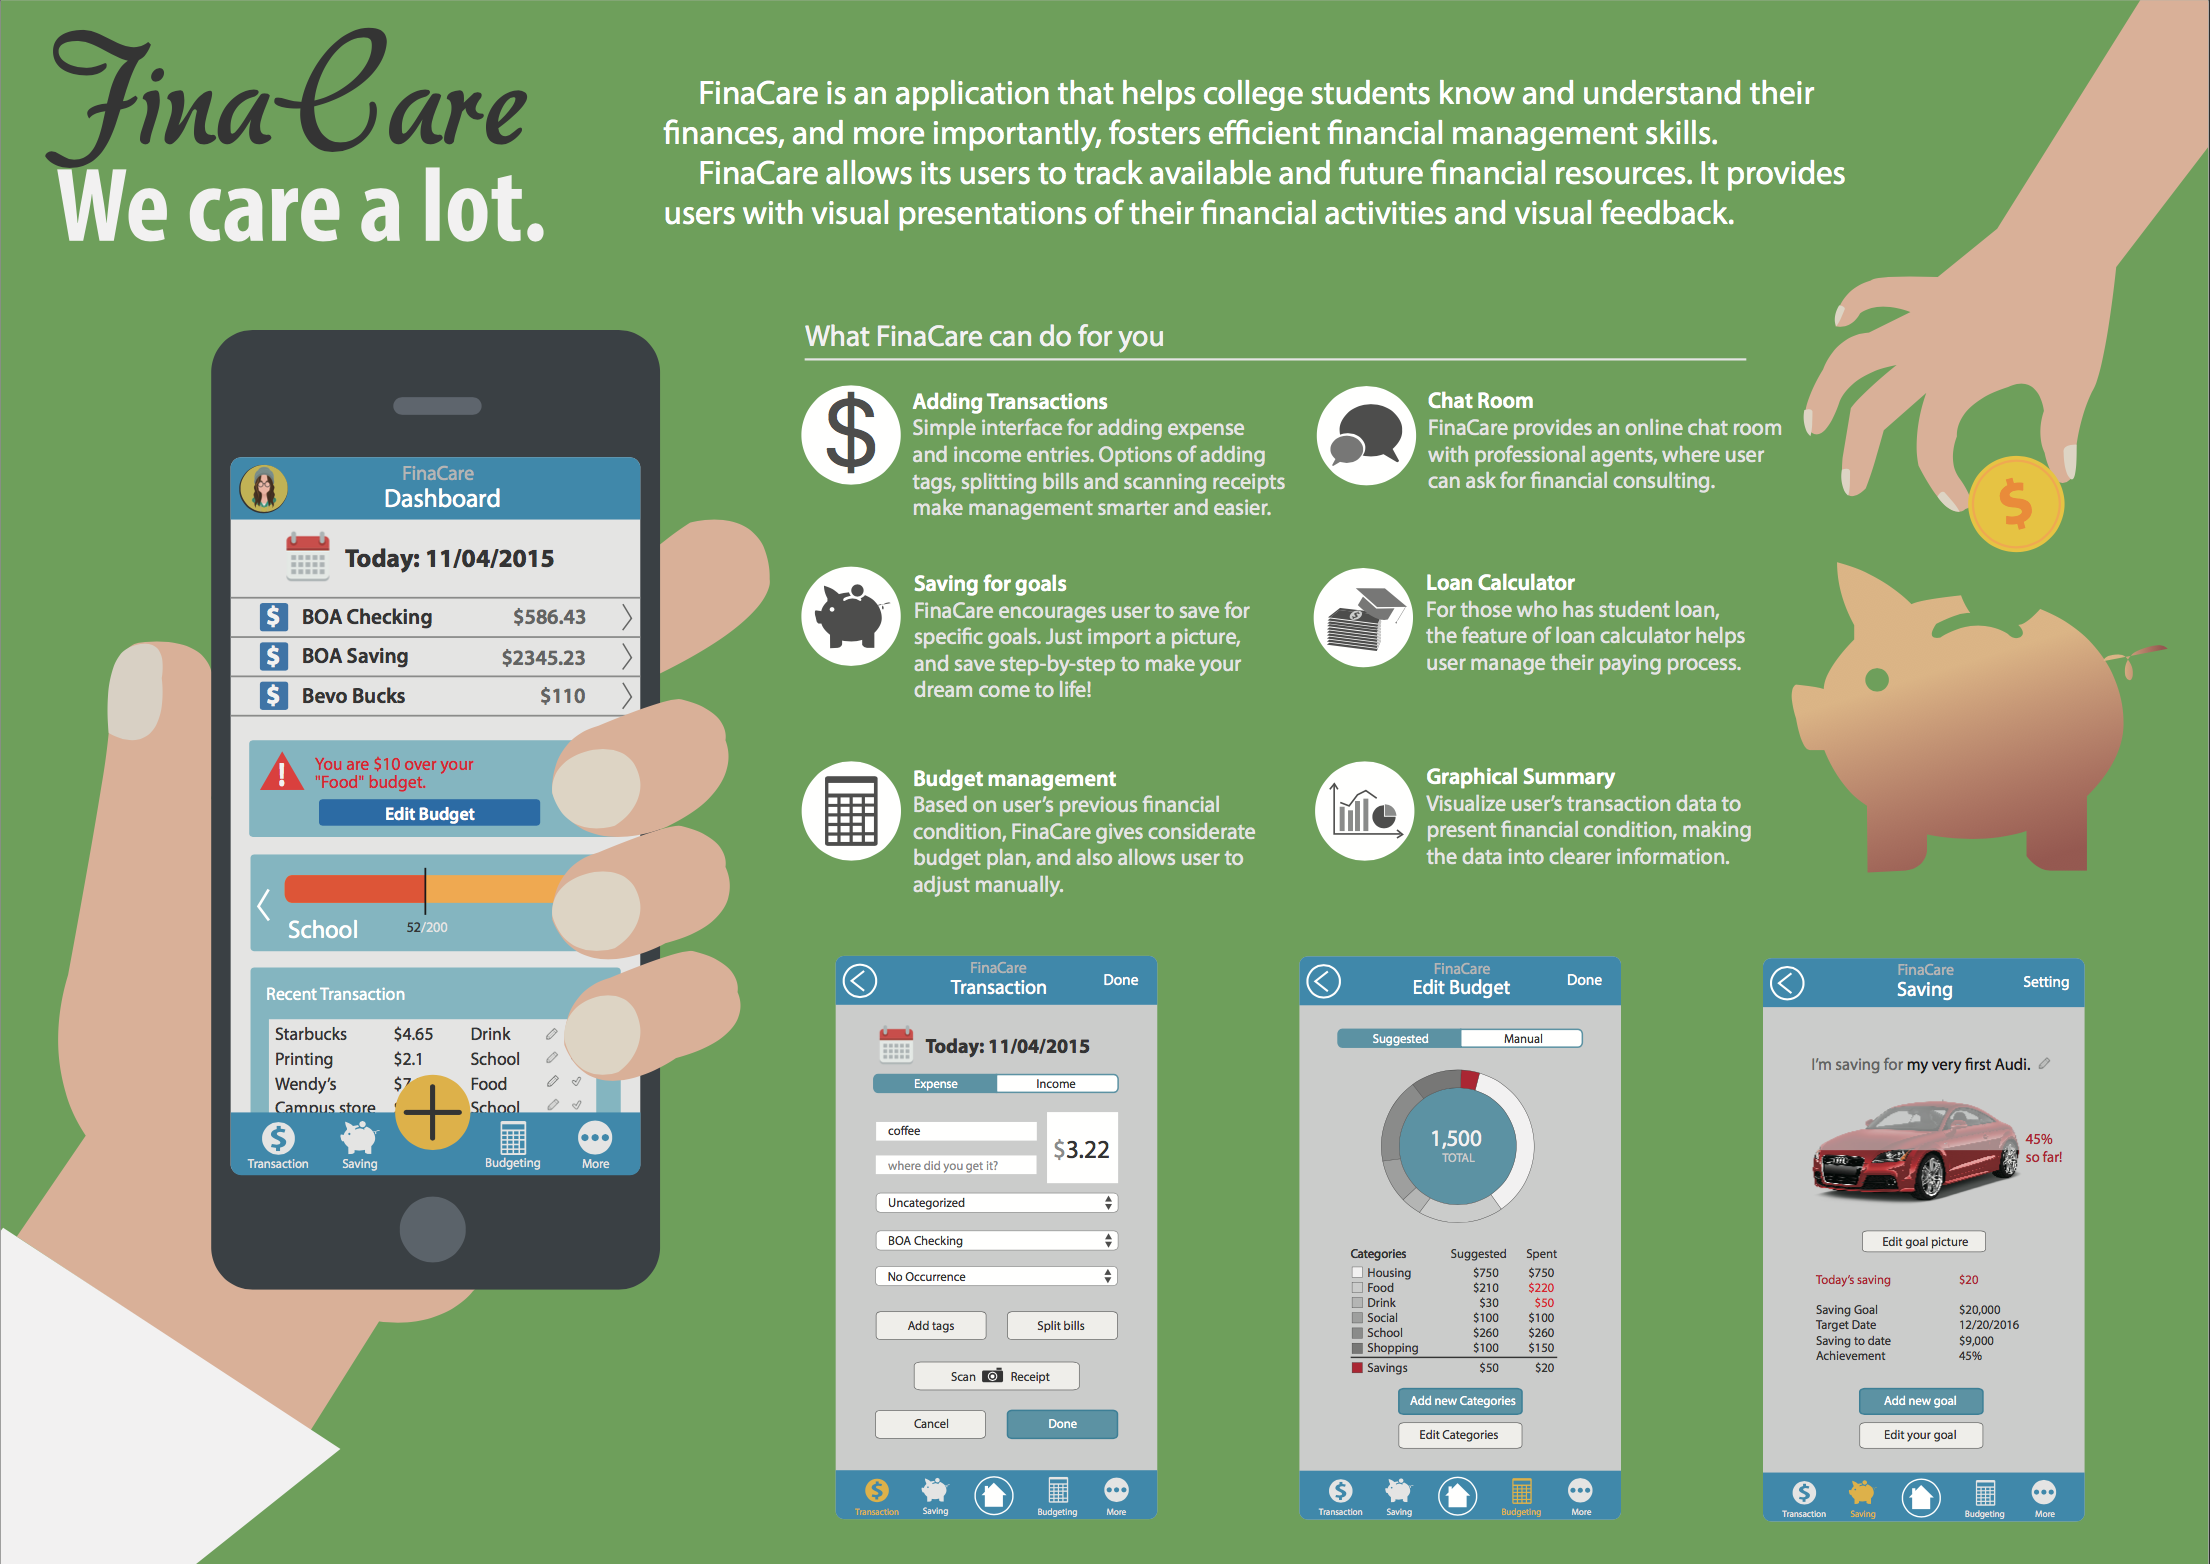 I made this poster with Illustrator to showcase the features of FinaCare 1.0 - see the 6 main features we designed for college students including saving for goals, chatroom for financial counseling, budget management, etc.The Axure prototype can be linked with this button. Try the interaction with FinaCare and see how can it help with your finances!